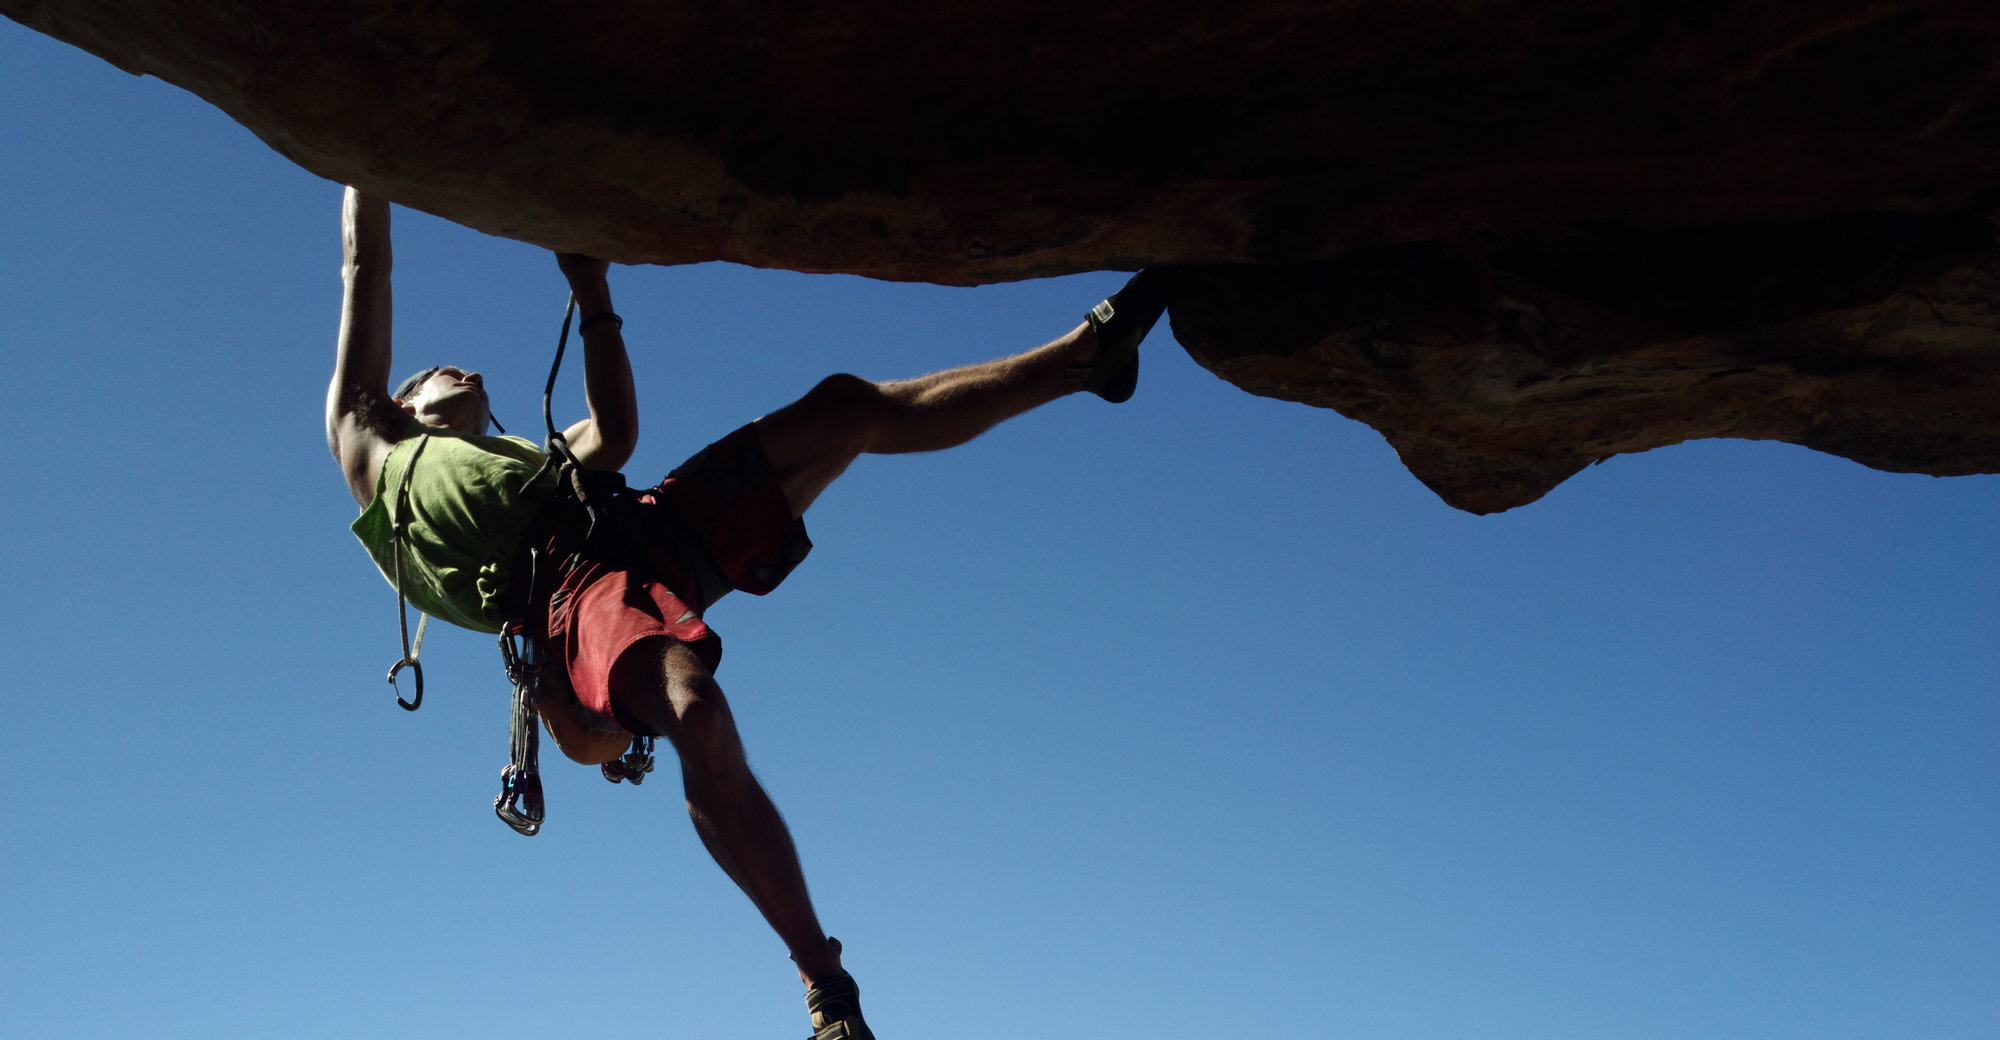 climbing-in-south-africa-captured-with-nokia-808-p